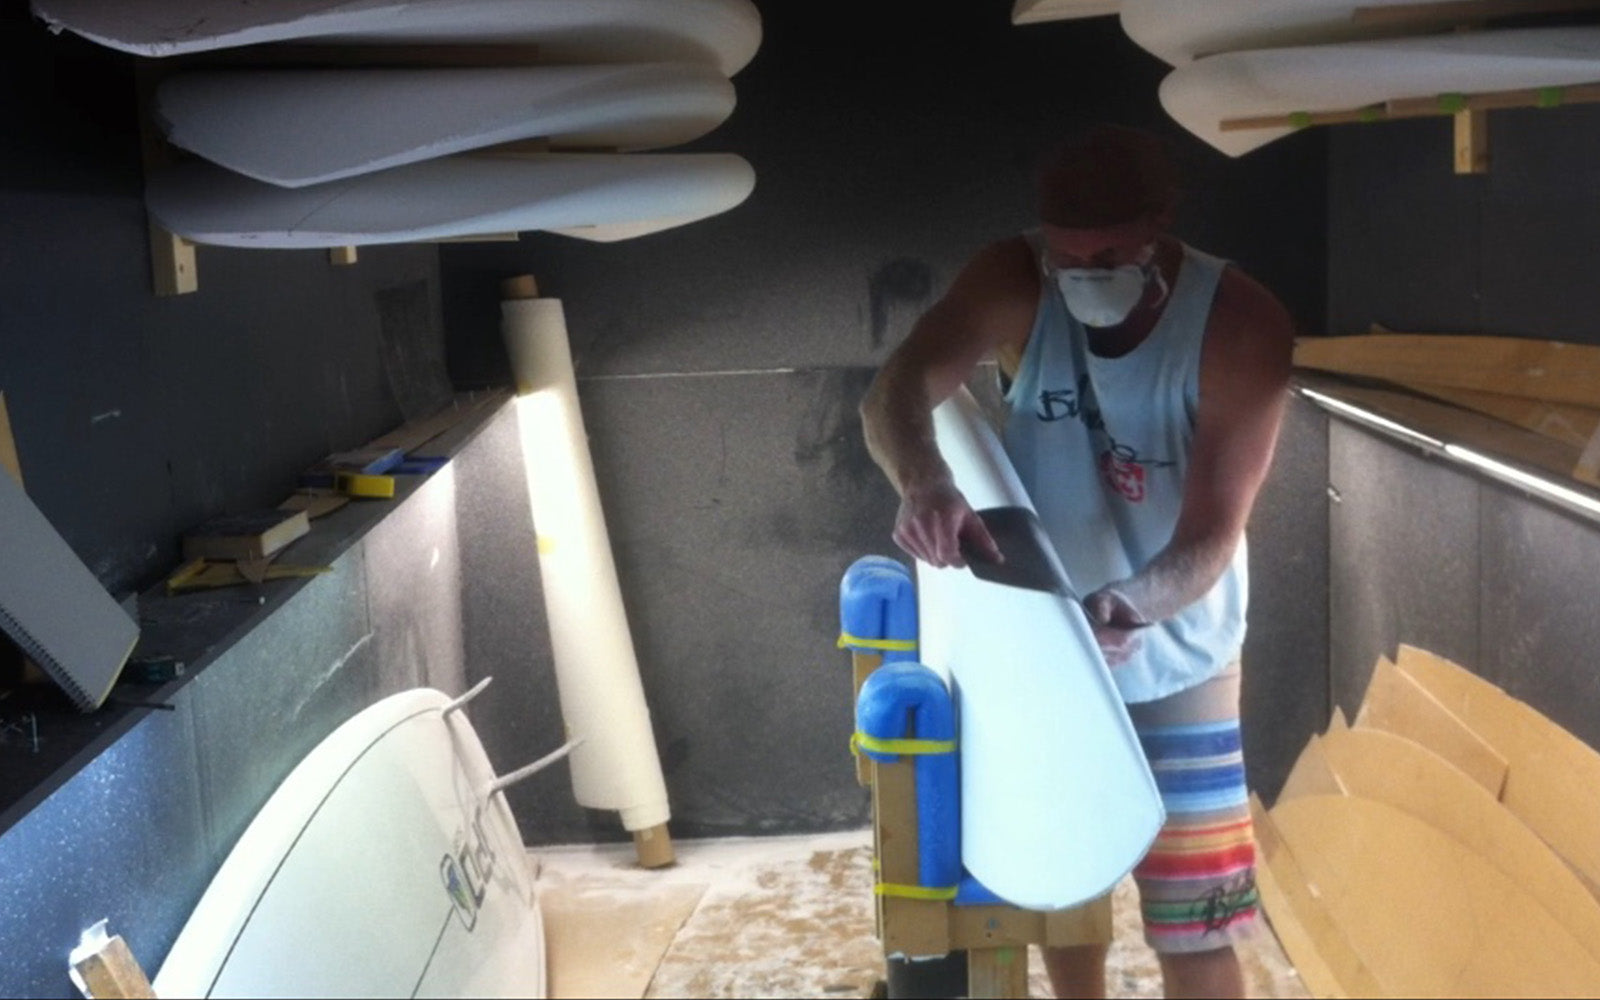 Mick Slattery from Surefire Boards Australia shaping a custom SUP stand up paddle board - made in Australia